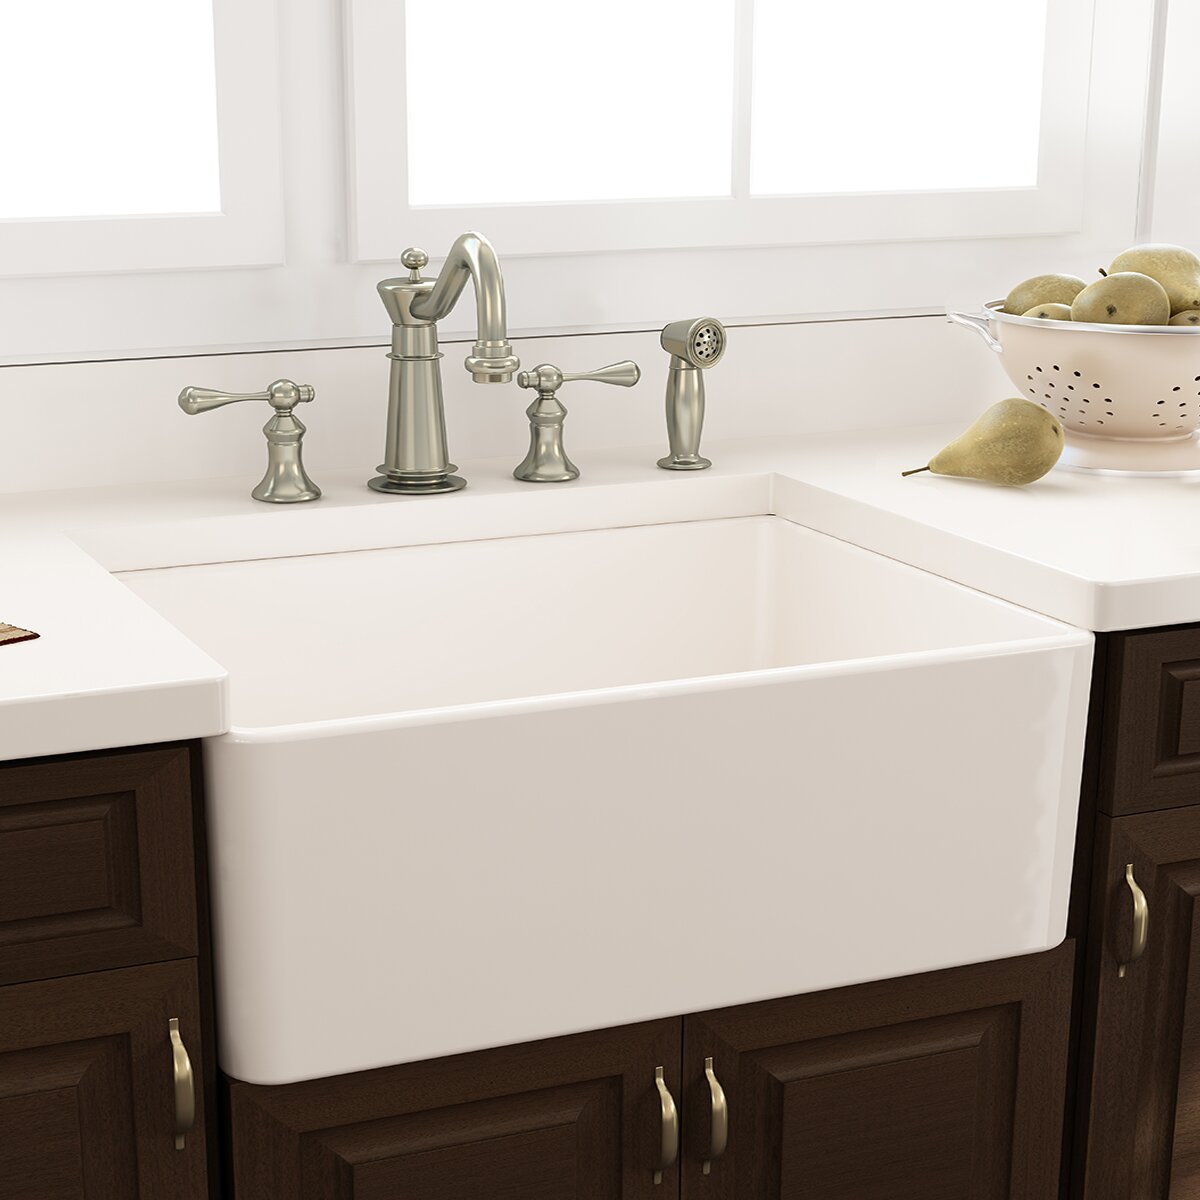 nantucket sinks cape x 18 kitchen sink with grid and drain reviews wayfair. Black Bedroom Furniture Sets. Home Design Ideas